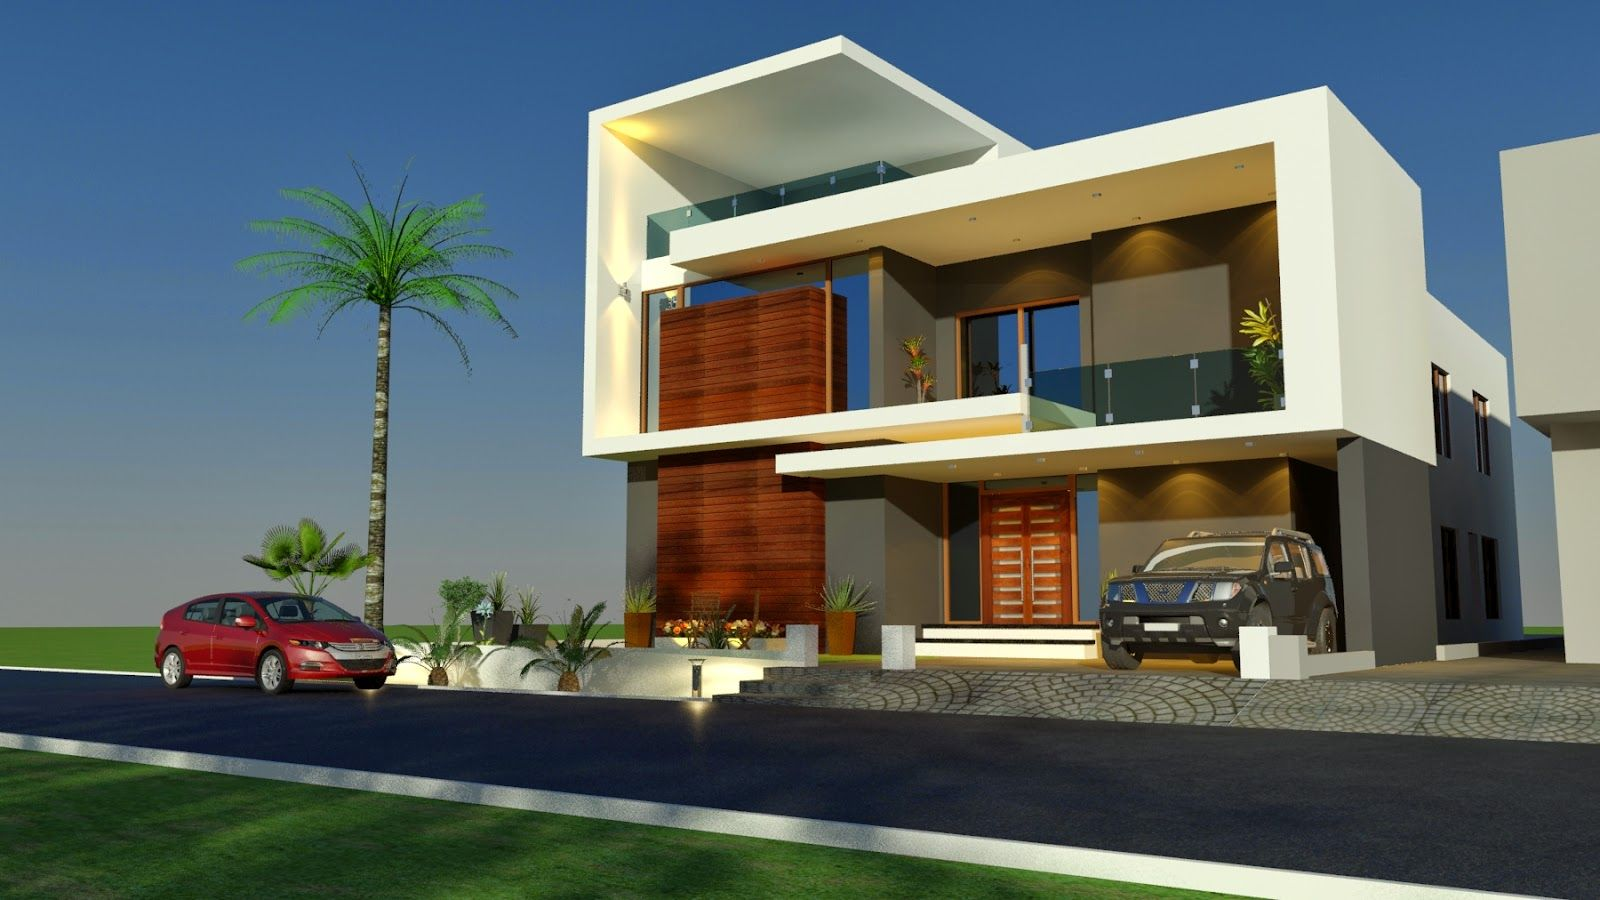 Bungalow House Design 3d Model A27 Modern Bungalows By: Modern Bungalow Elevation